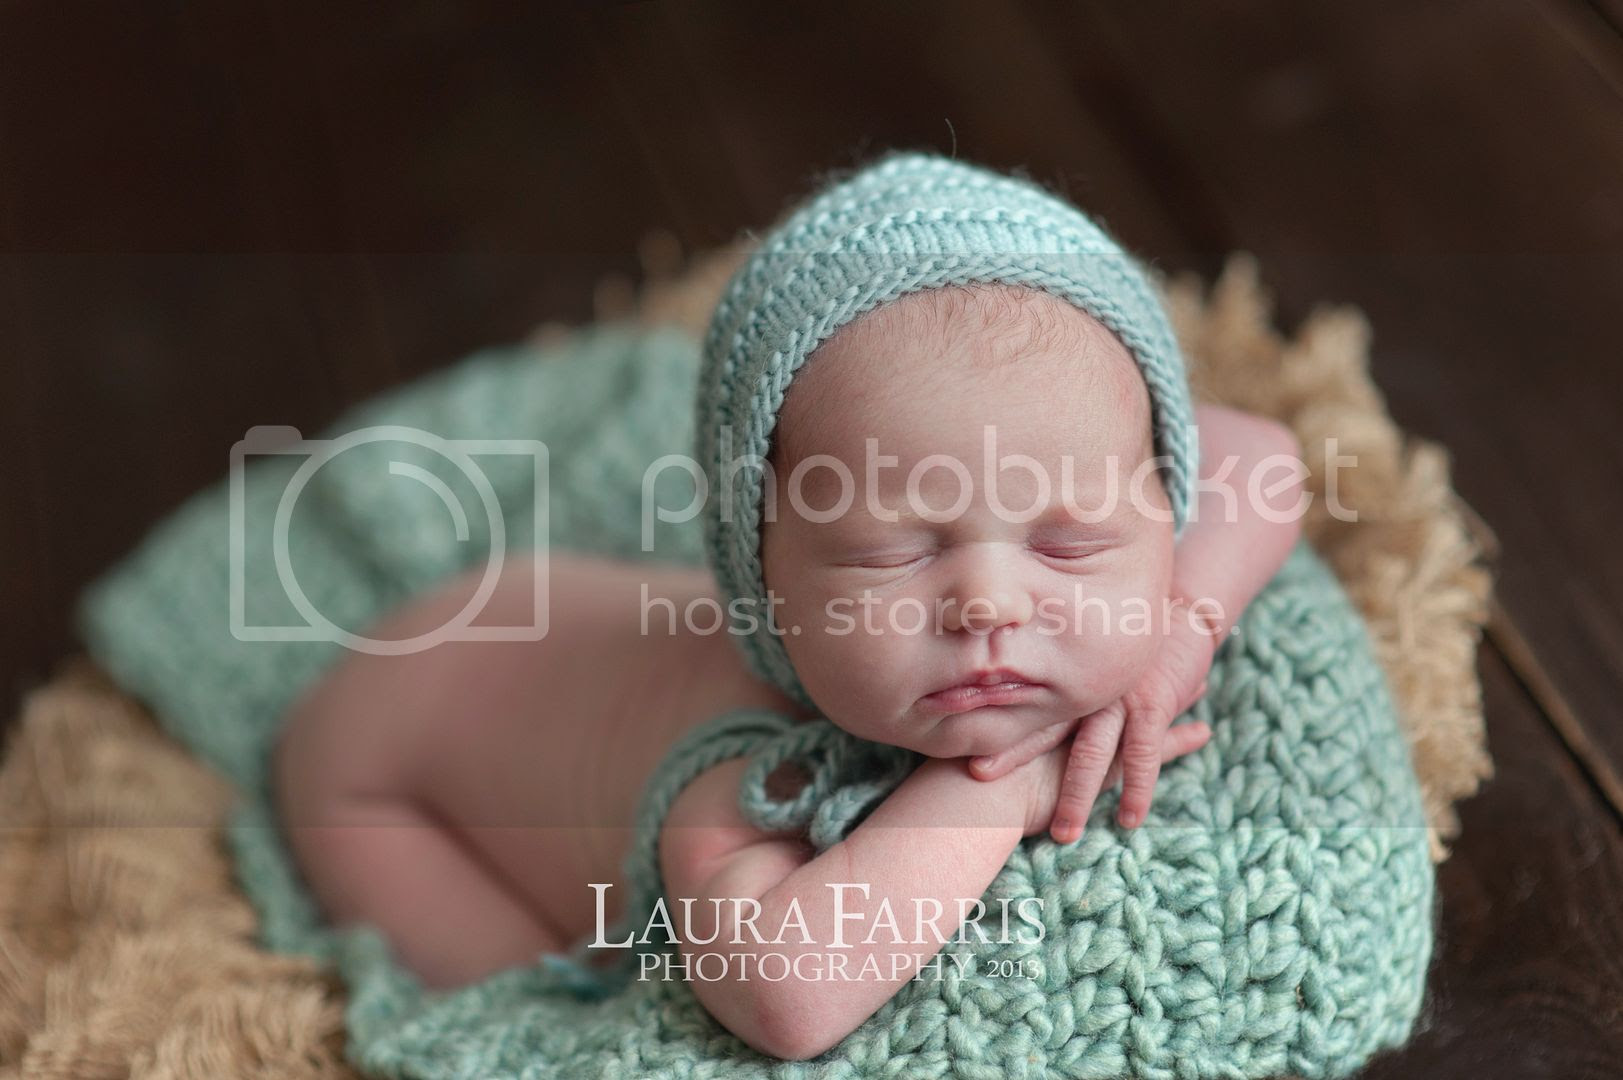 photo newborn-photographer-treaure-valley_zpse6913262.jpg